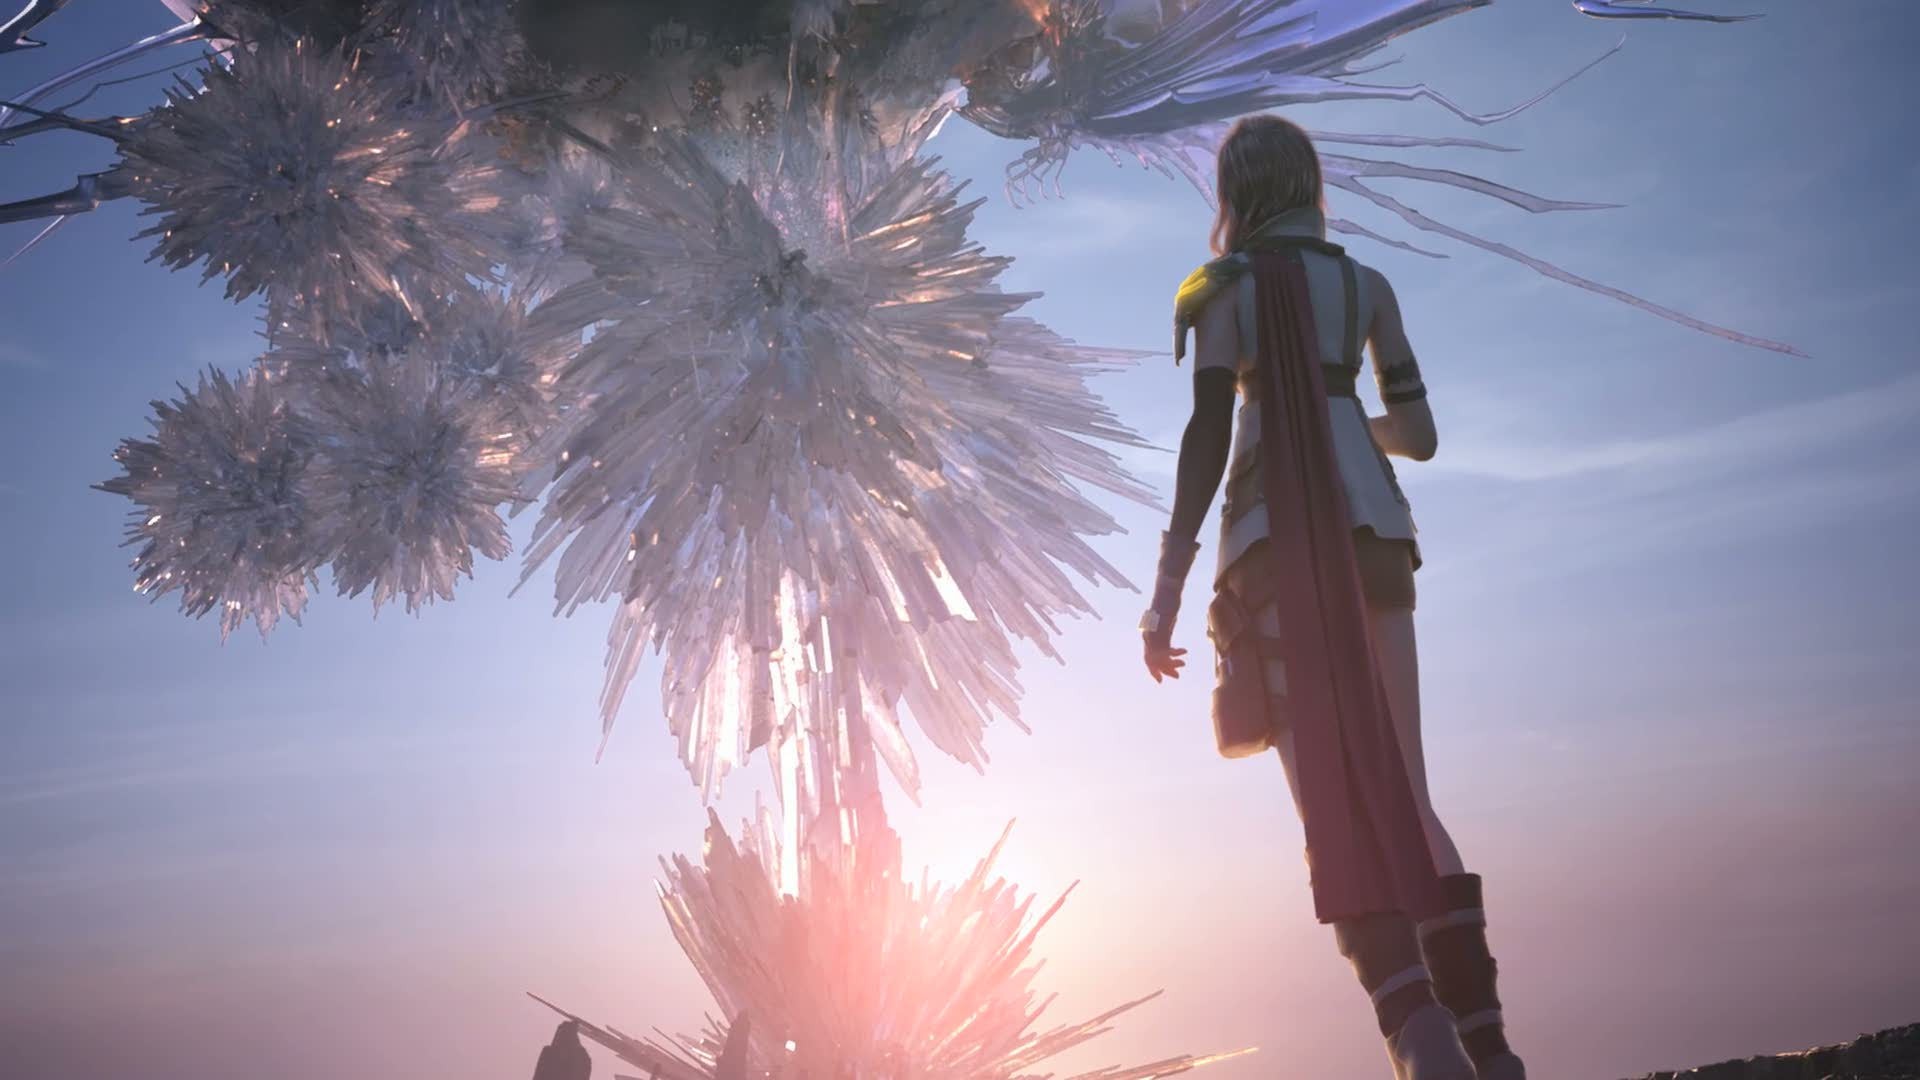 Final Fantasy Xiii Wallpapers 1080p 17118 HD Wallpapers